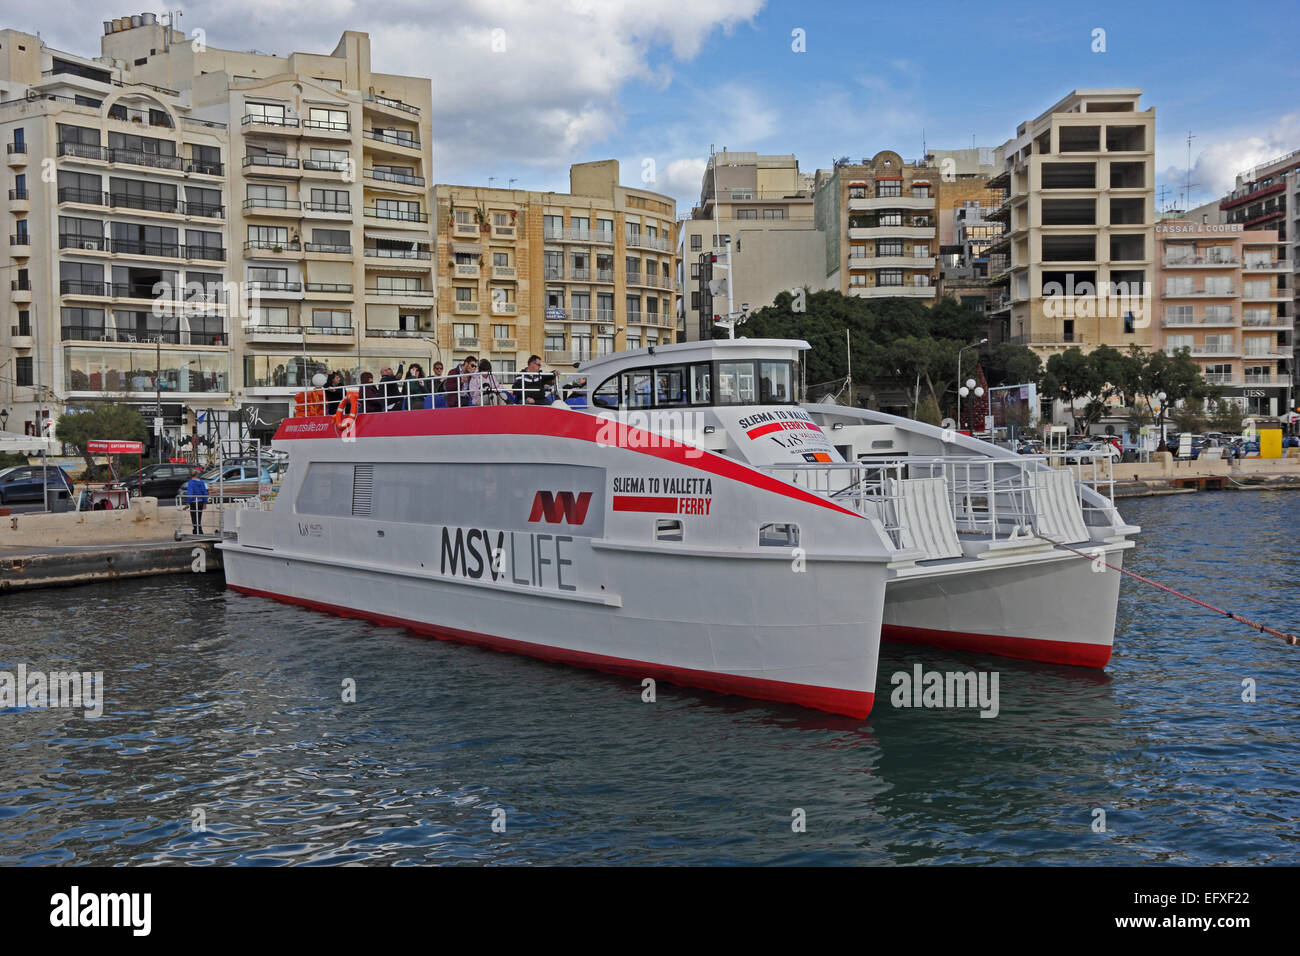 Top Cat 1, Sliema to Valletta ferry, operated by MSV Life, moored in Sliema, Malta - Stock Image